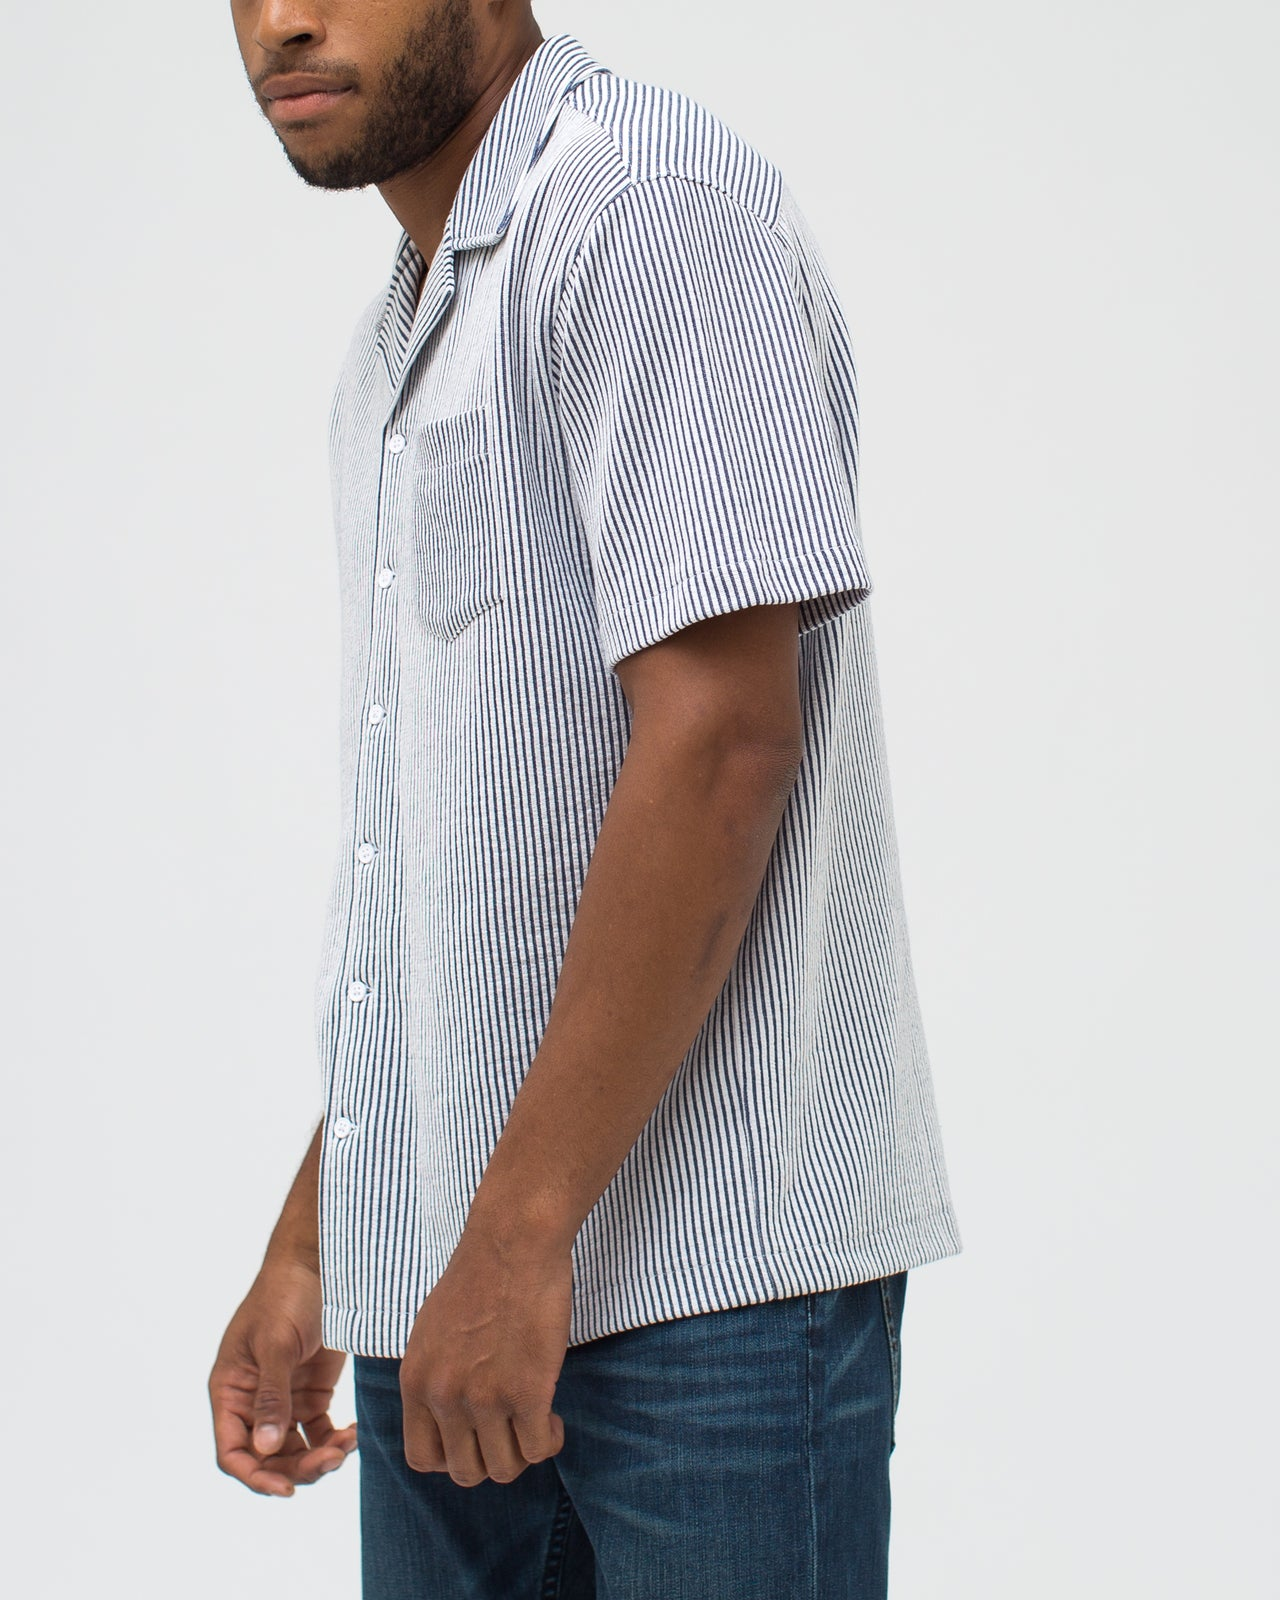 Jacquard Stripe Camp Shirt - Color: Navy | Blue